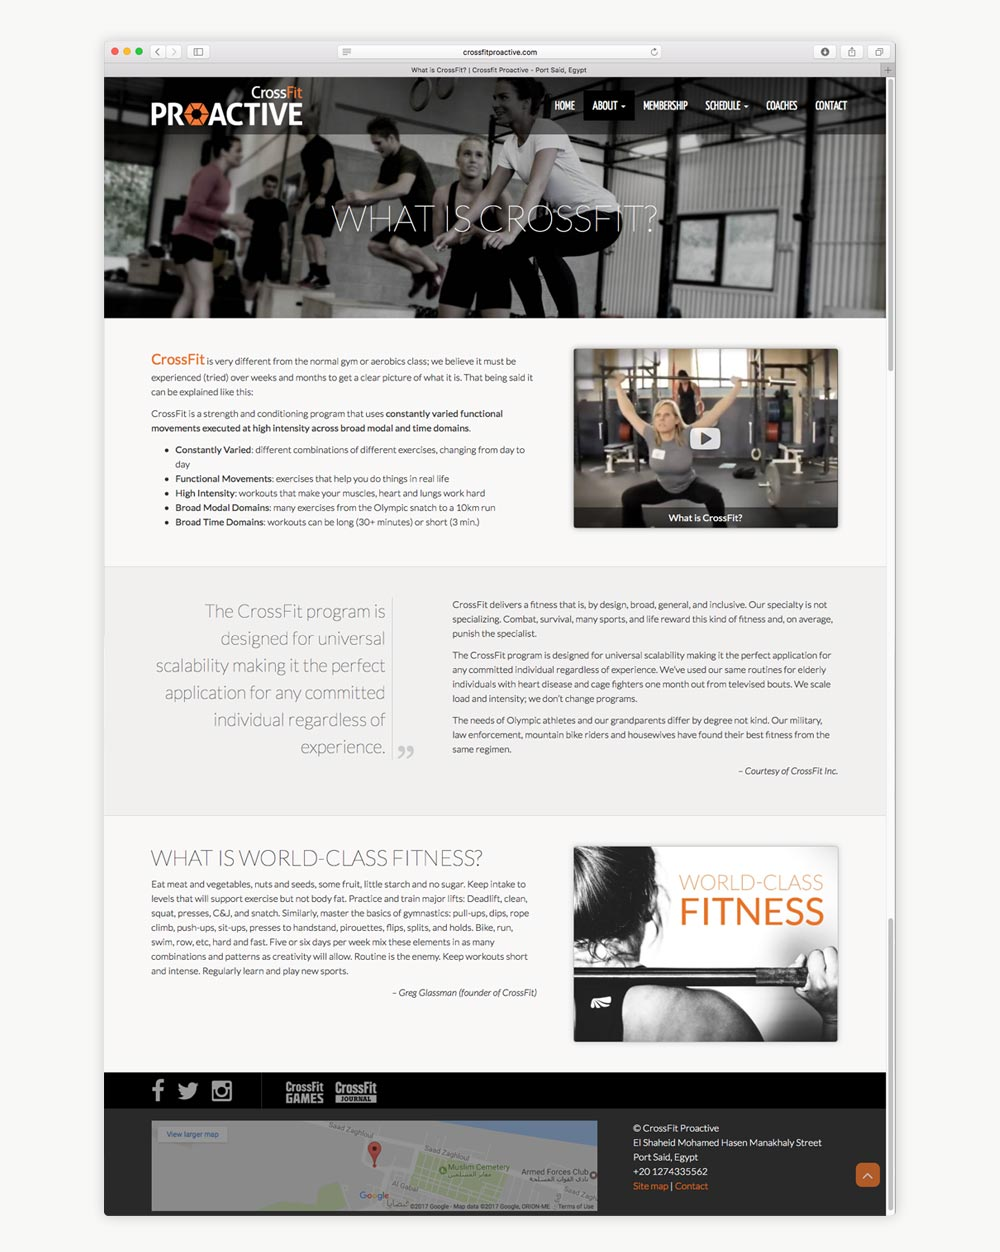 crossfit-proactive-web2